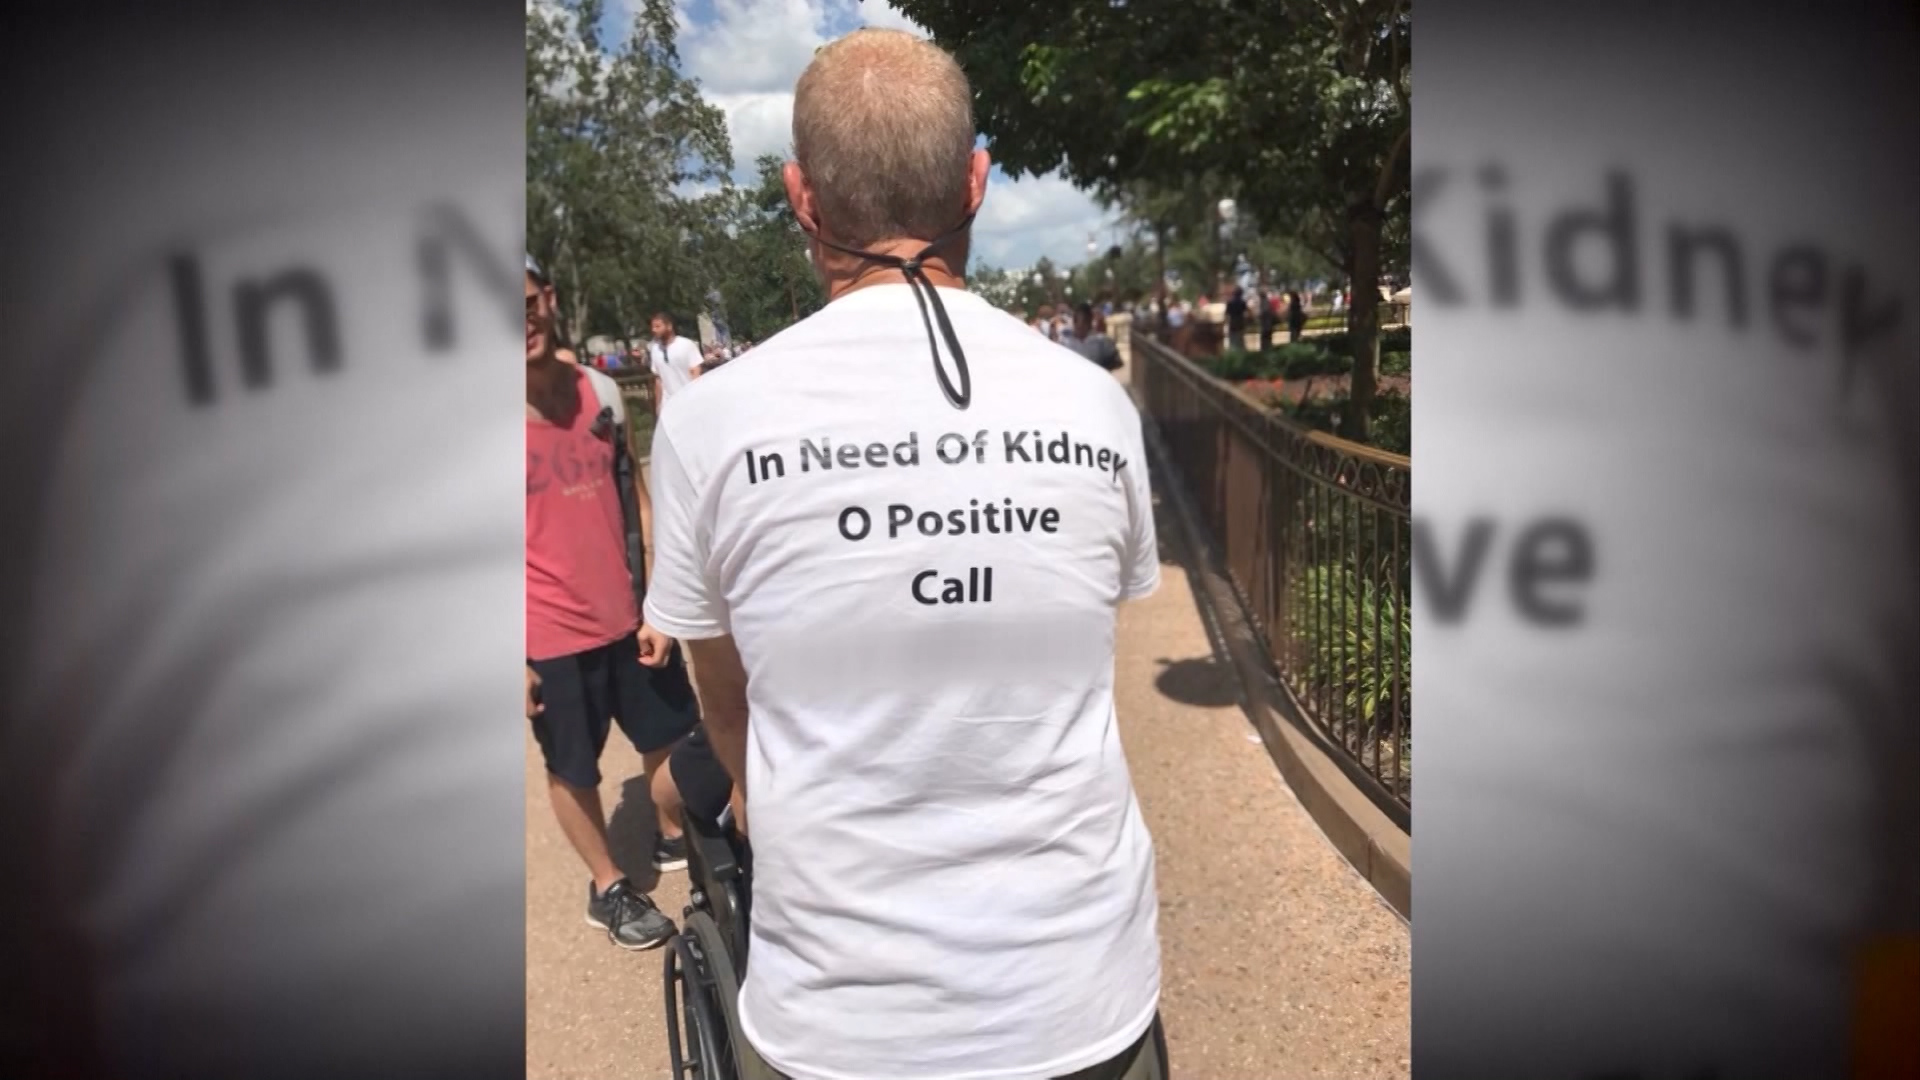 Shirt Plea Gives Man A New Kidney